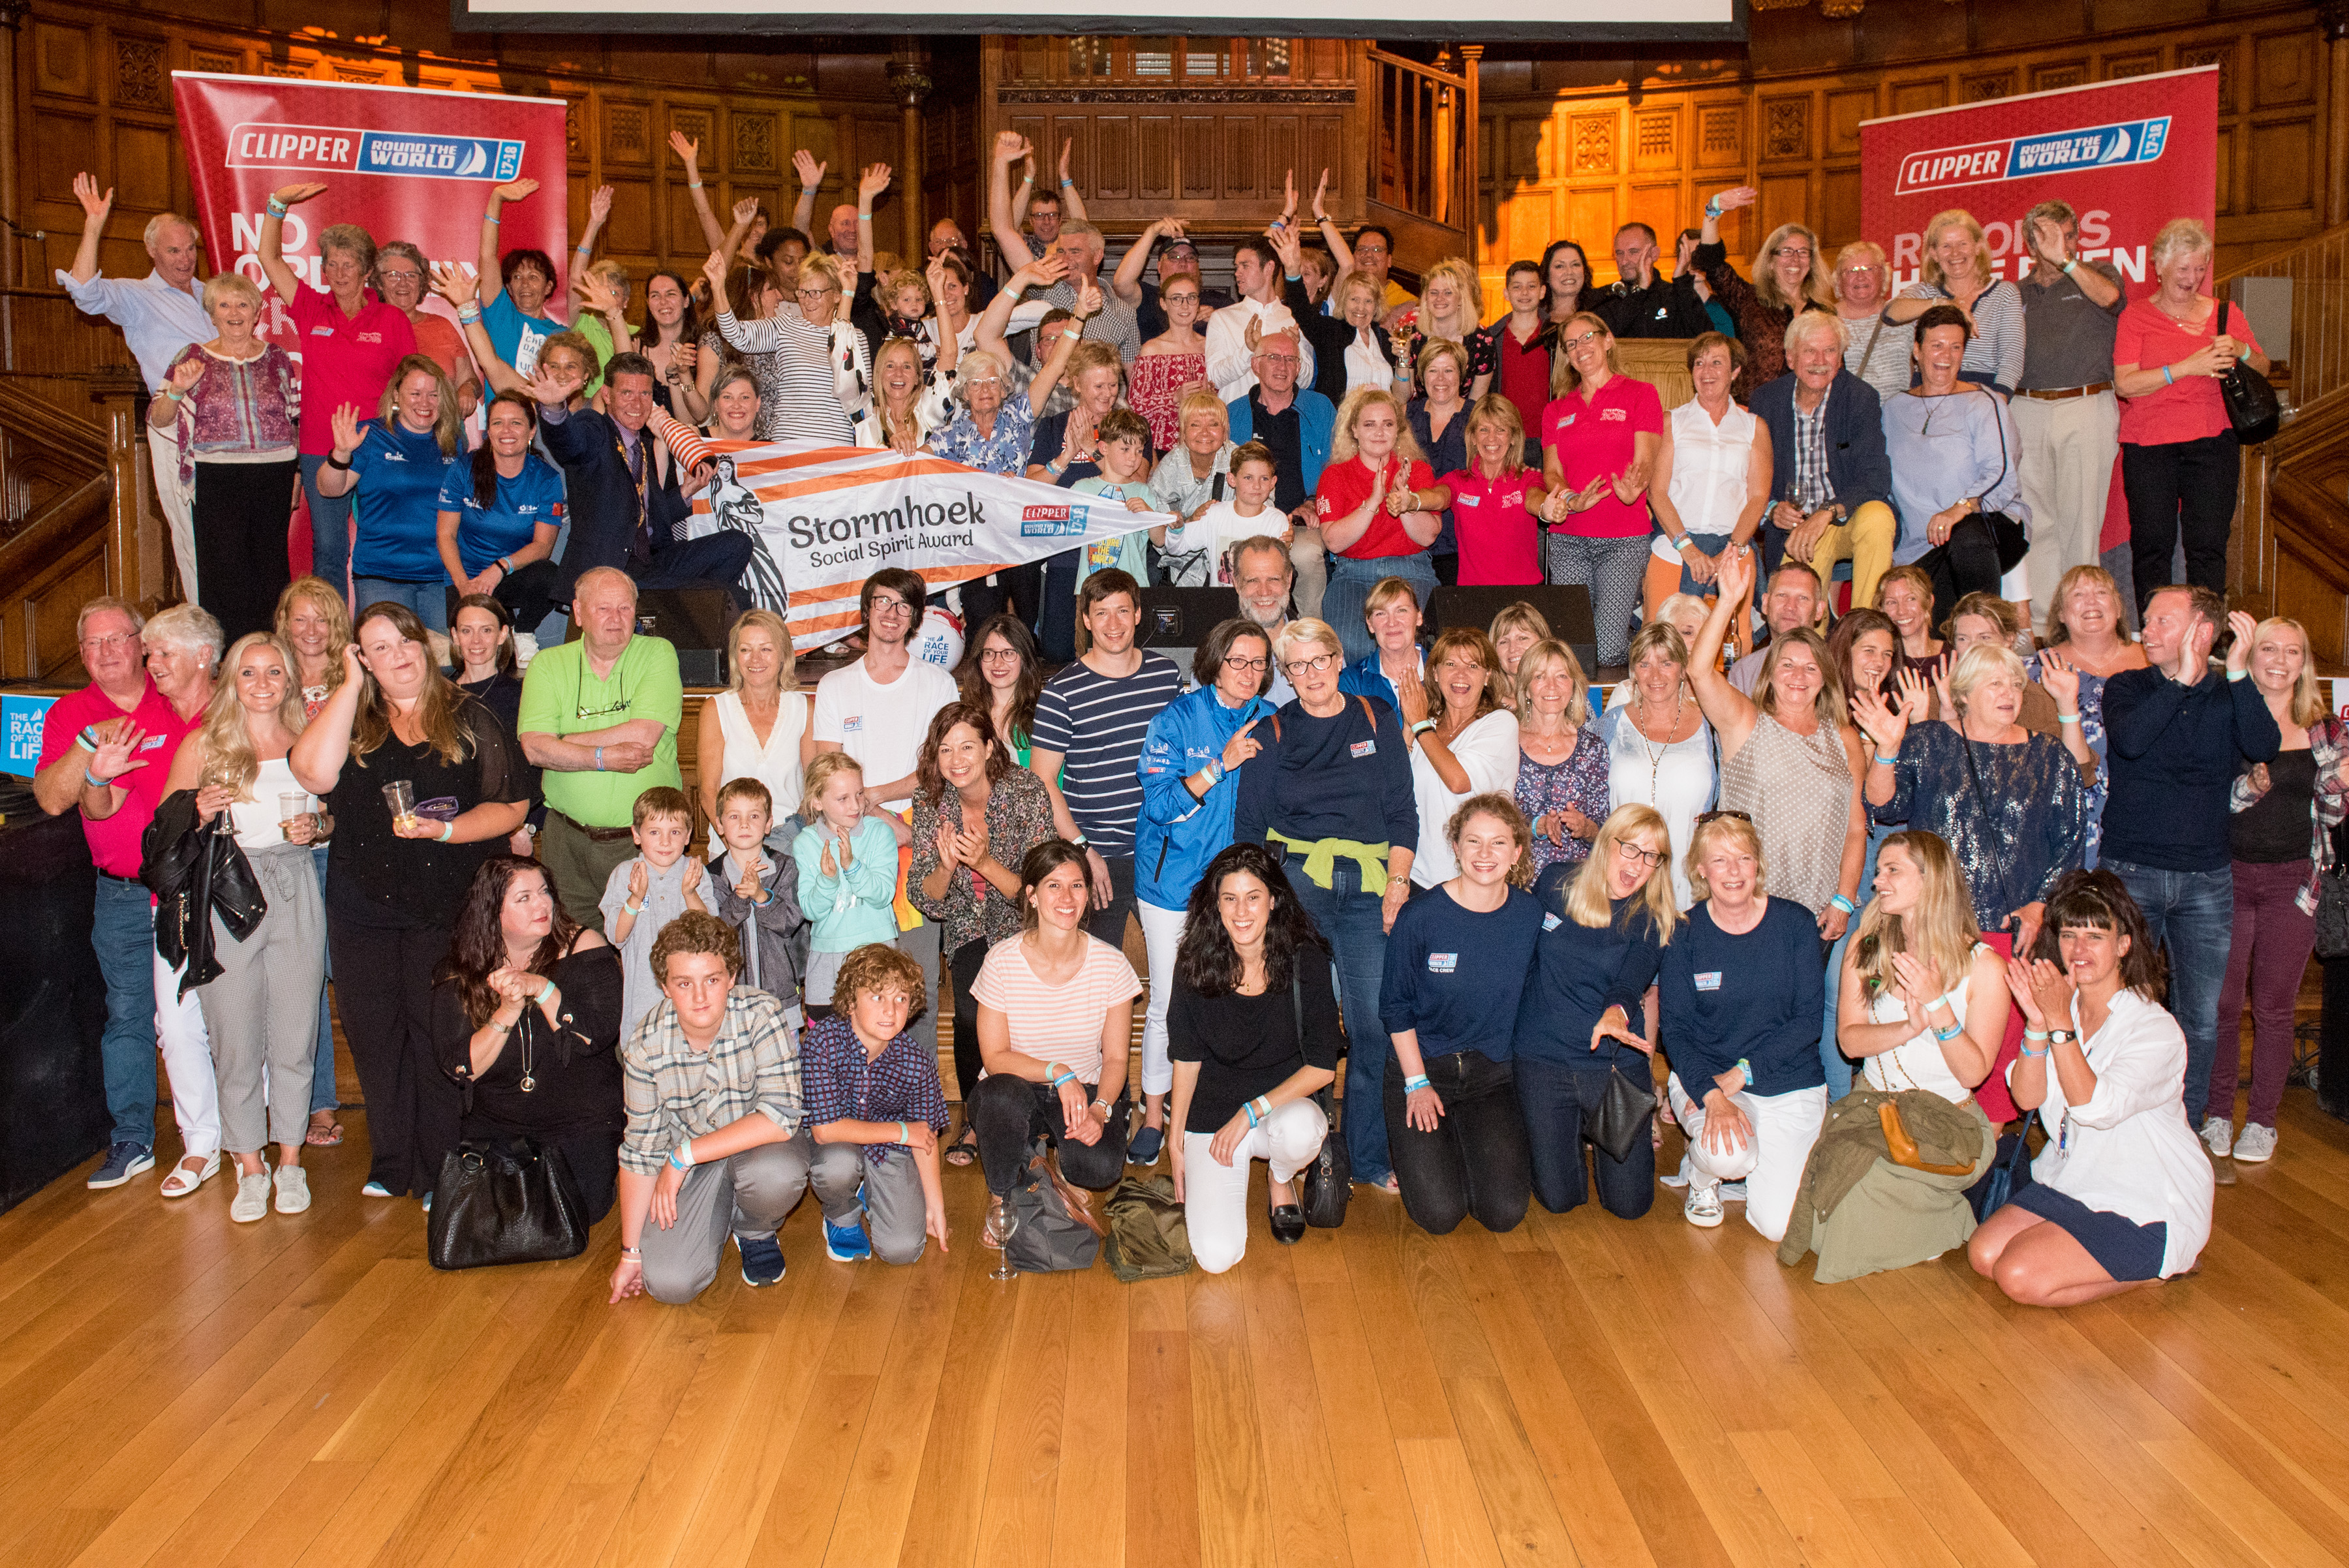 Supporters Steal the Show at LegenDerry Prize Giving